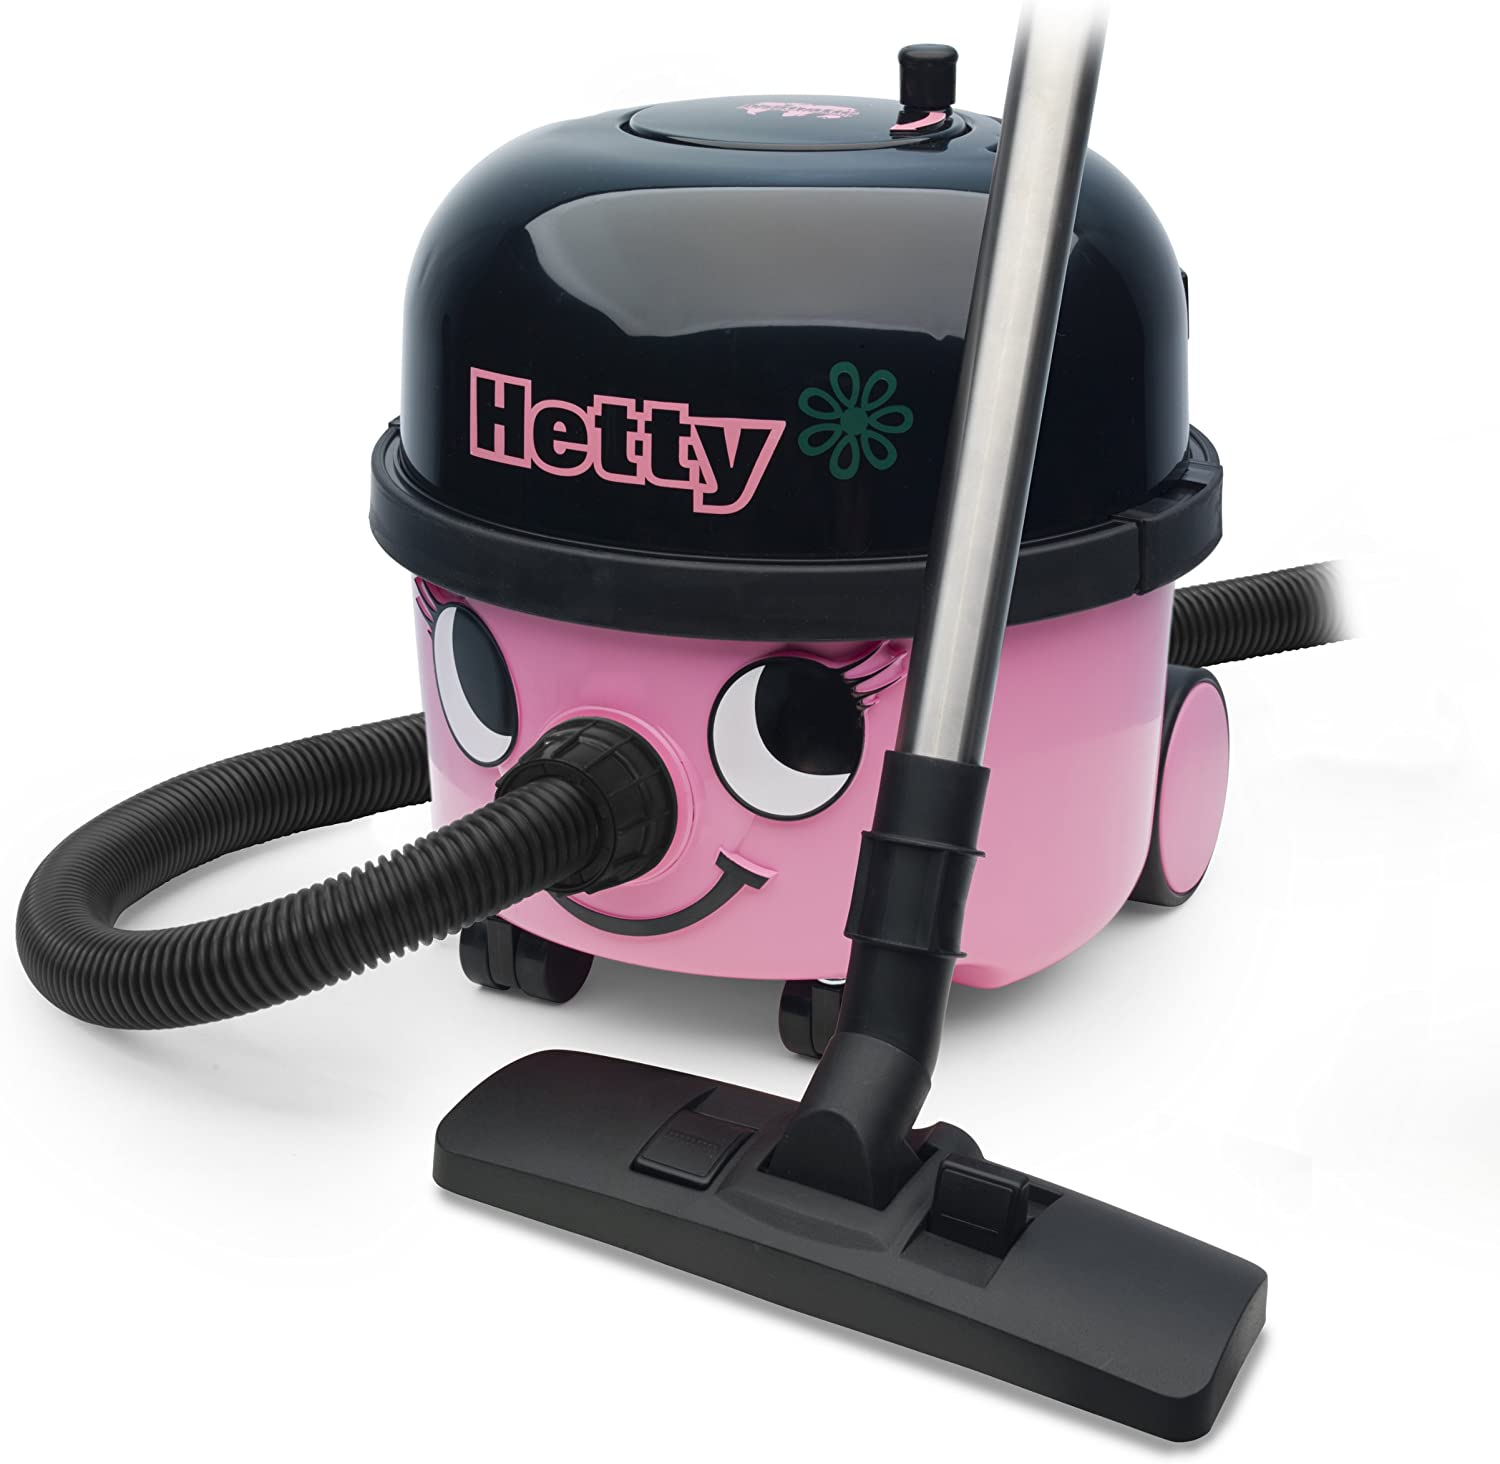 Amazon Com Numatic Het200a Hetty Canister Vacuum Cleaner Pink Health Personal Care